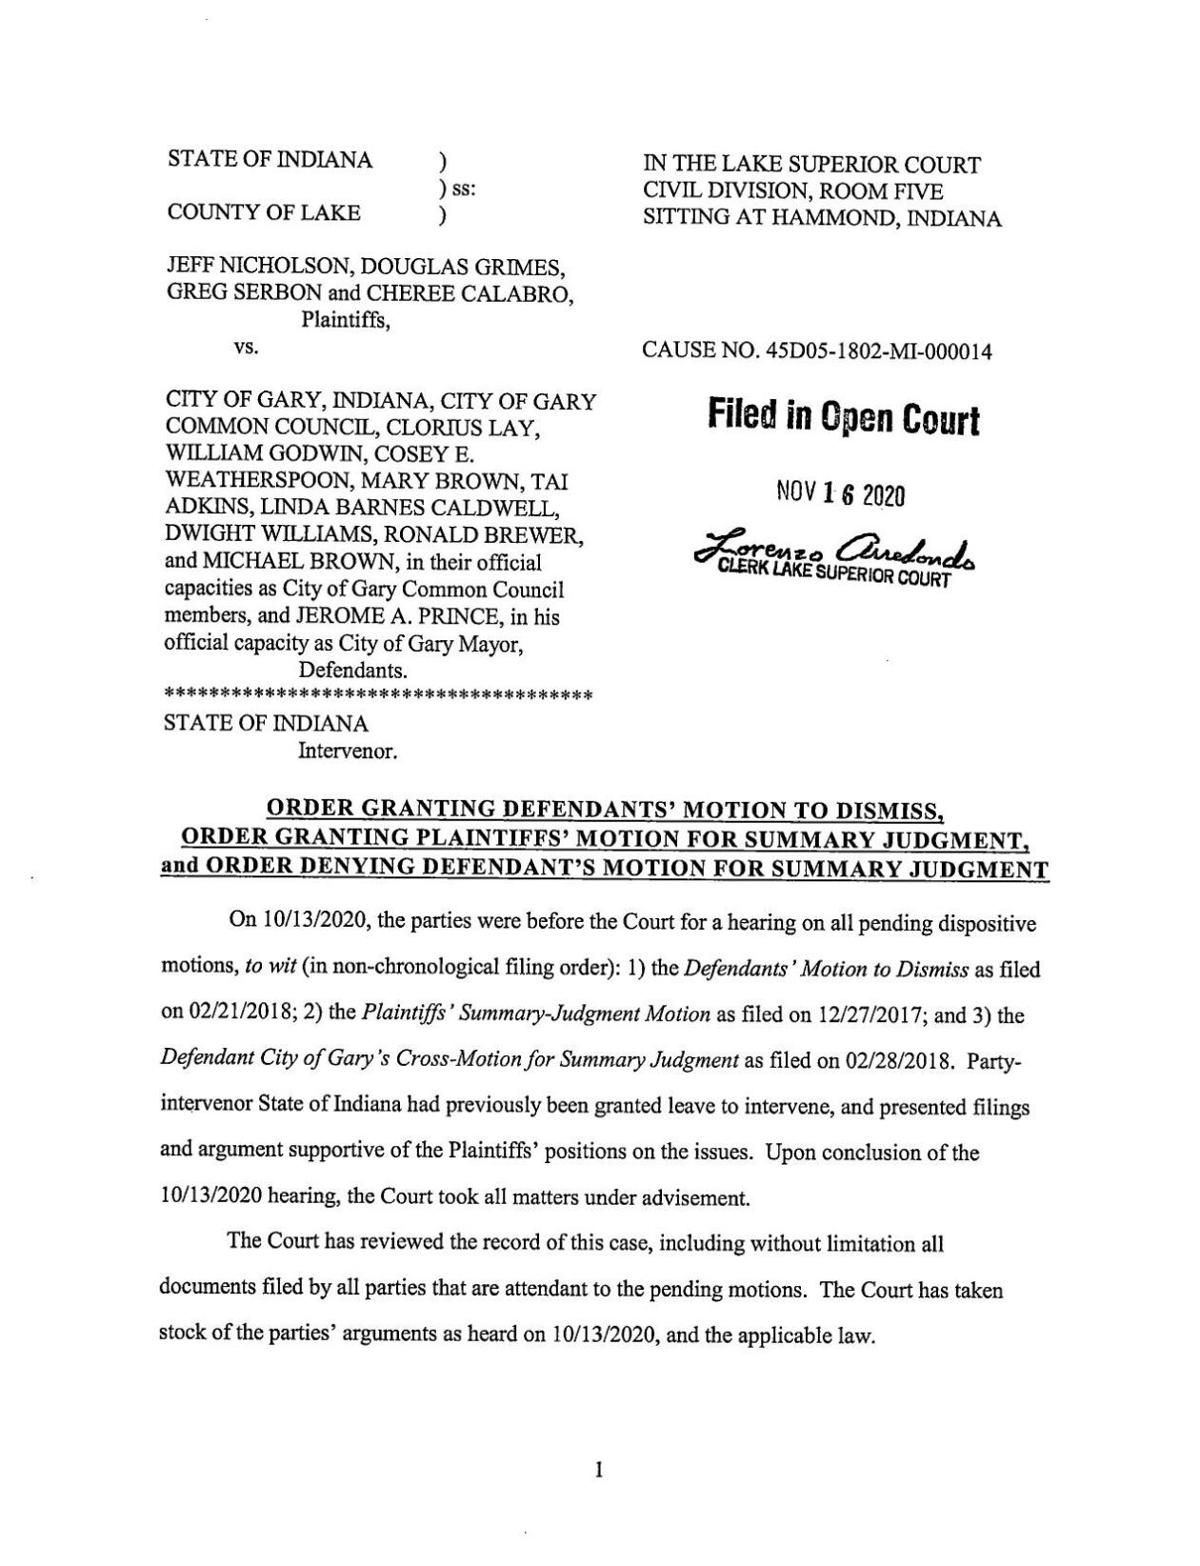 Nicholson v. Gary ruling in 'Welcoming City' case